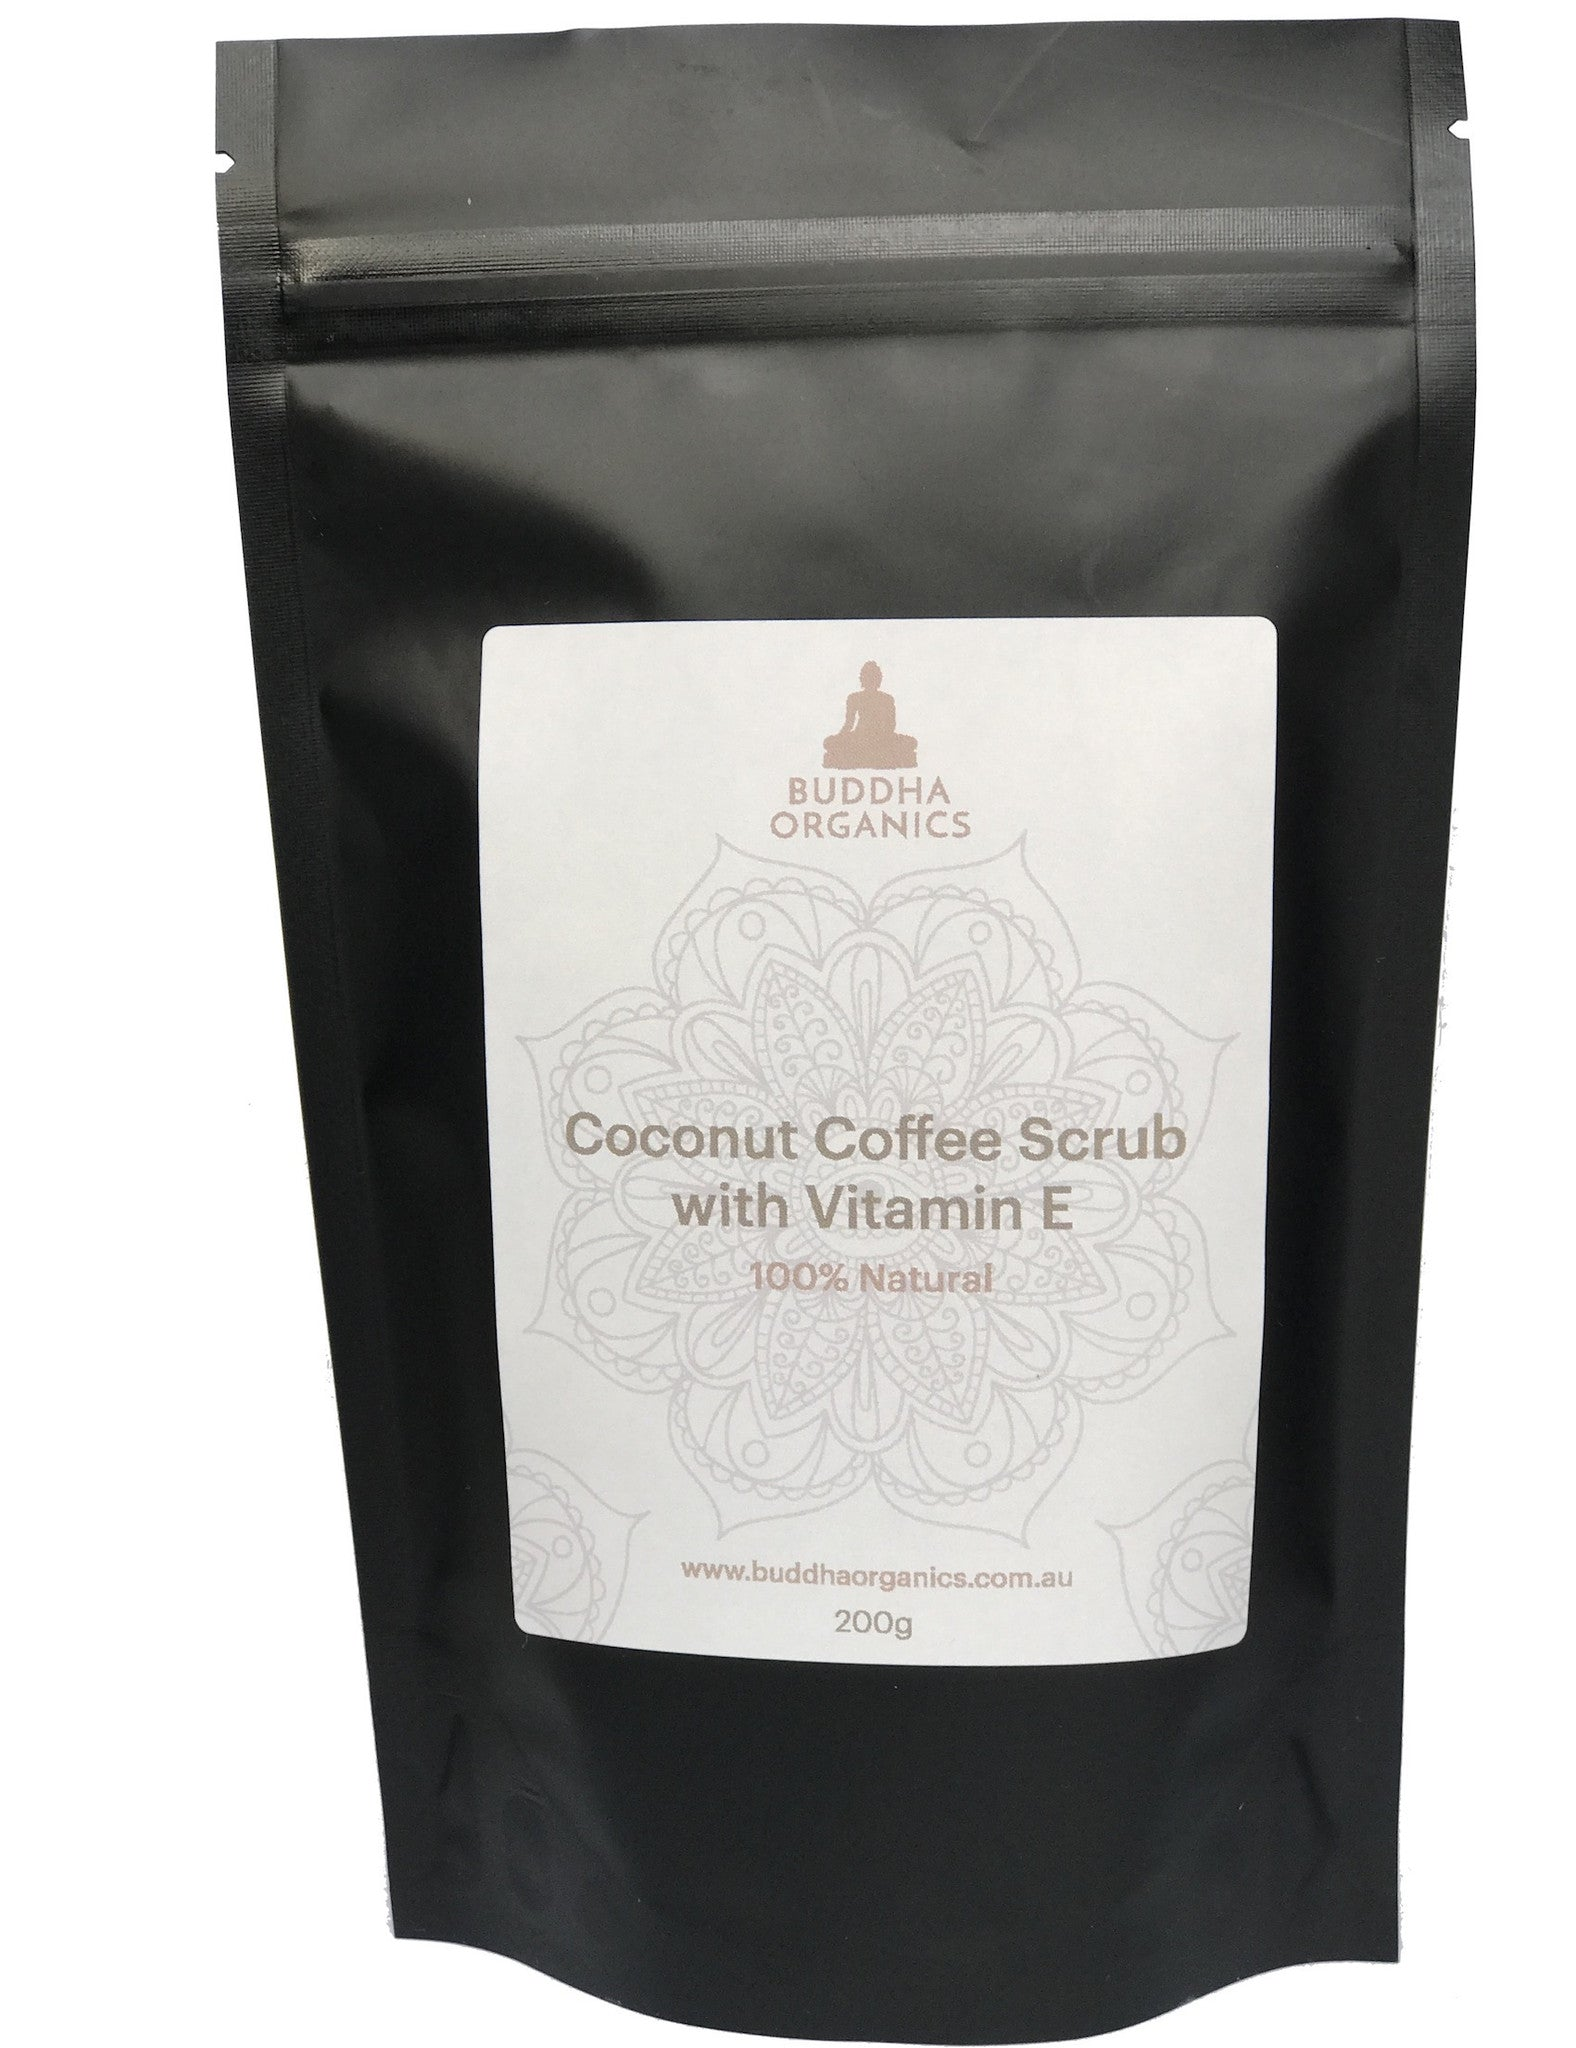 Coconut Coffee Scrub with Vitamin E - 100% Natural